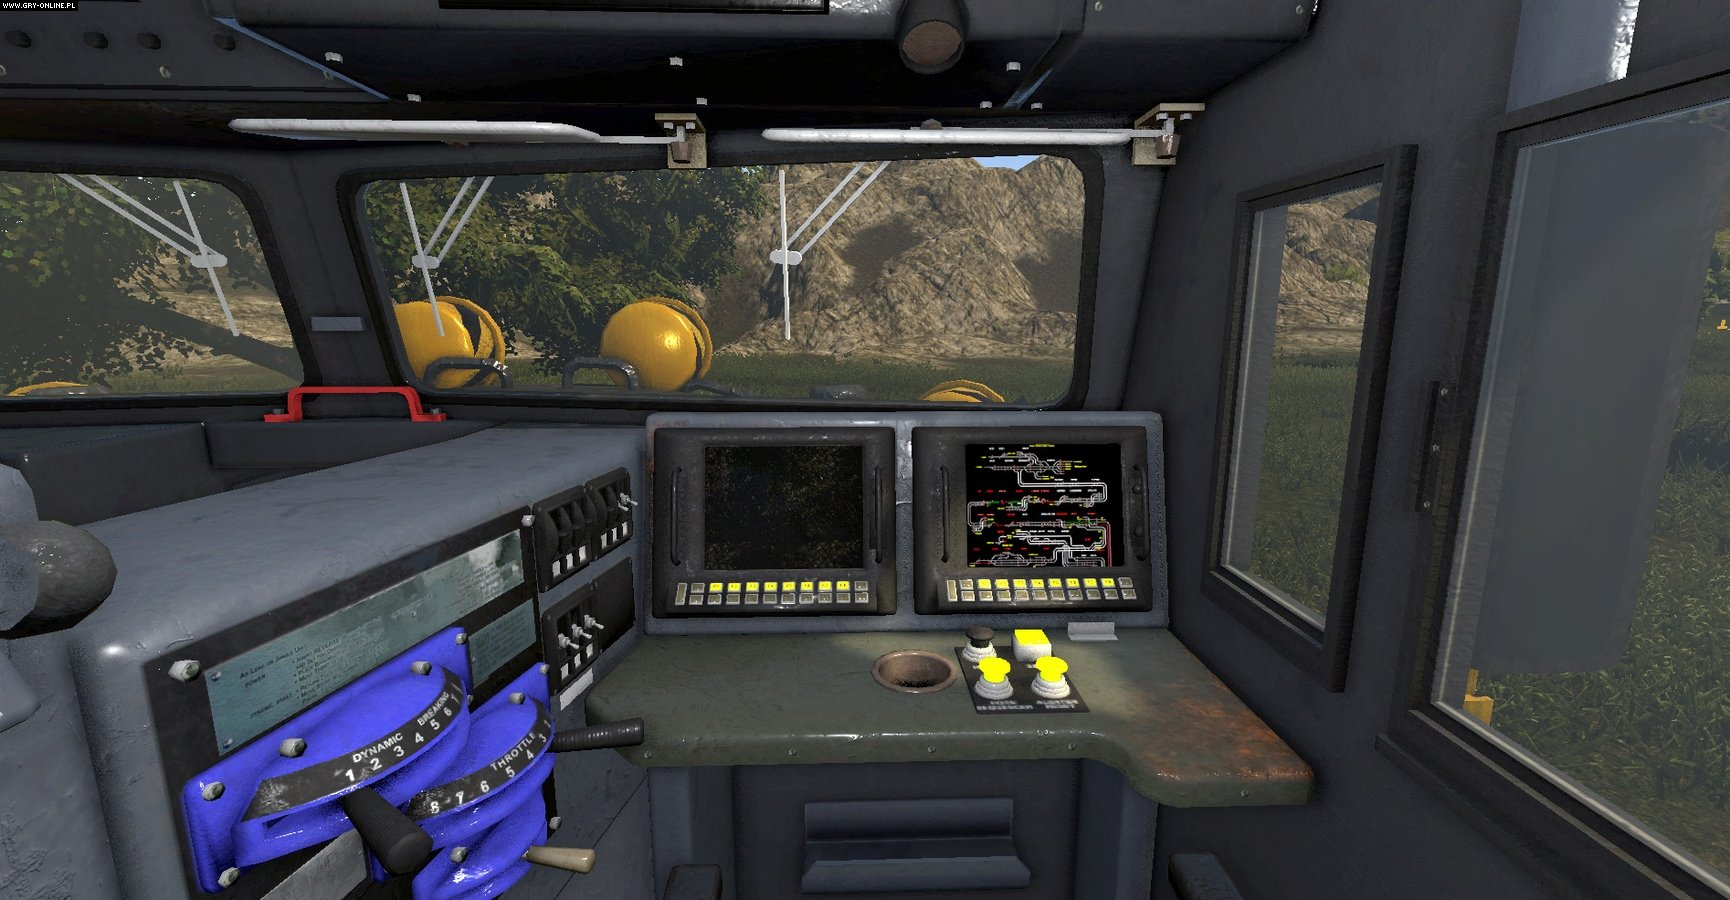 Train Mechanic Simulator 2017 PC Games Image 6/38, Si7 Studio, PlayWay